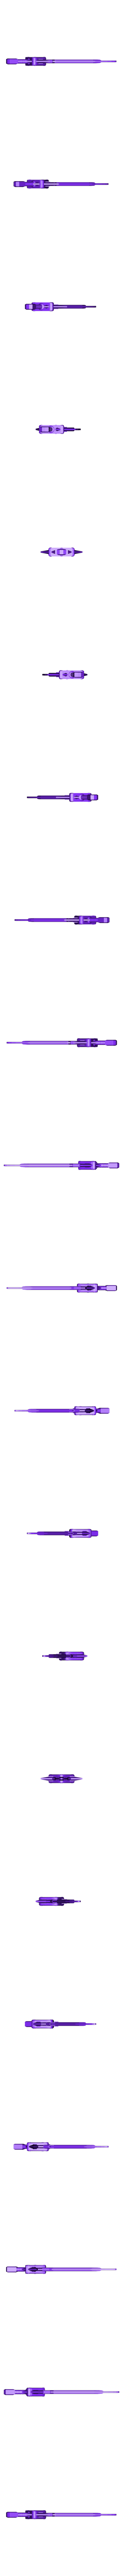 Arcade_Riven_Powered_Sword.stl Download free STL file ARCADE RIVEN POWERED SWORD • 3D printable template, A_SKEWED_VIEW_3D